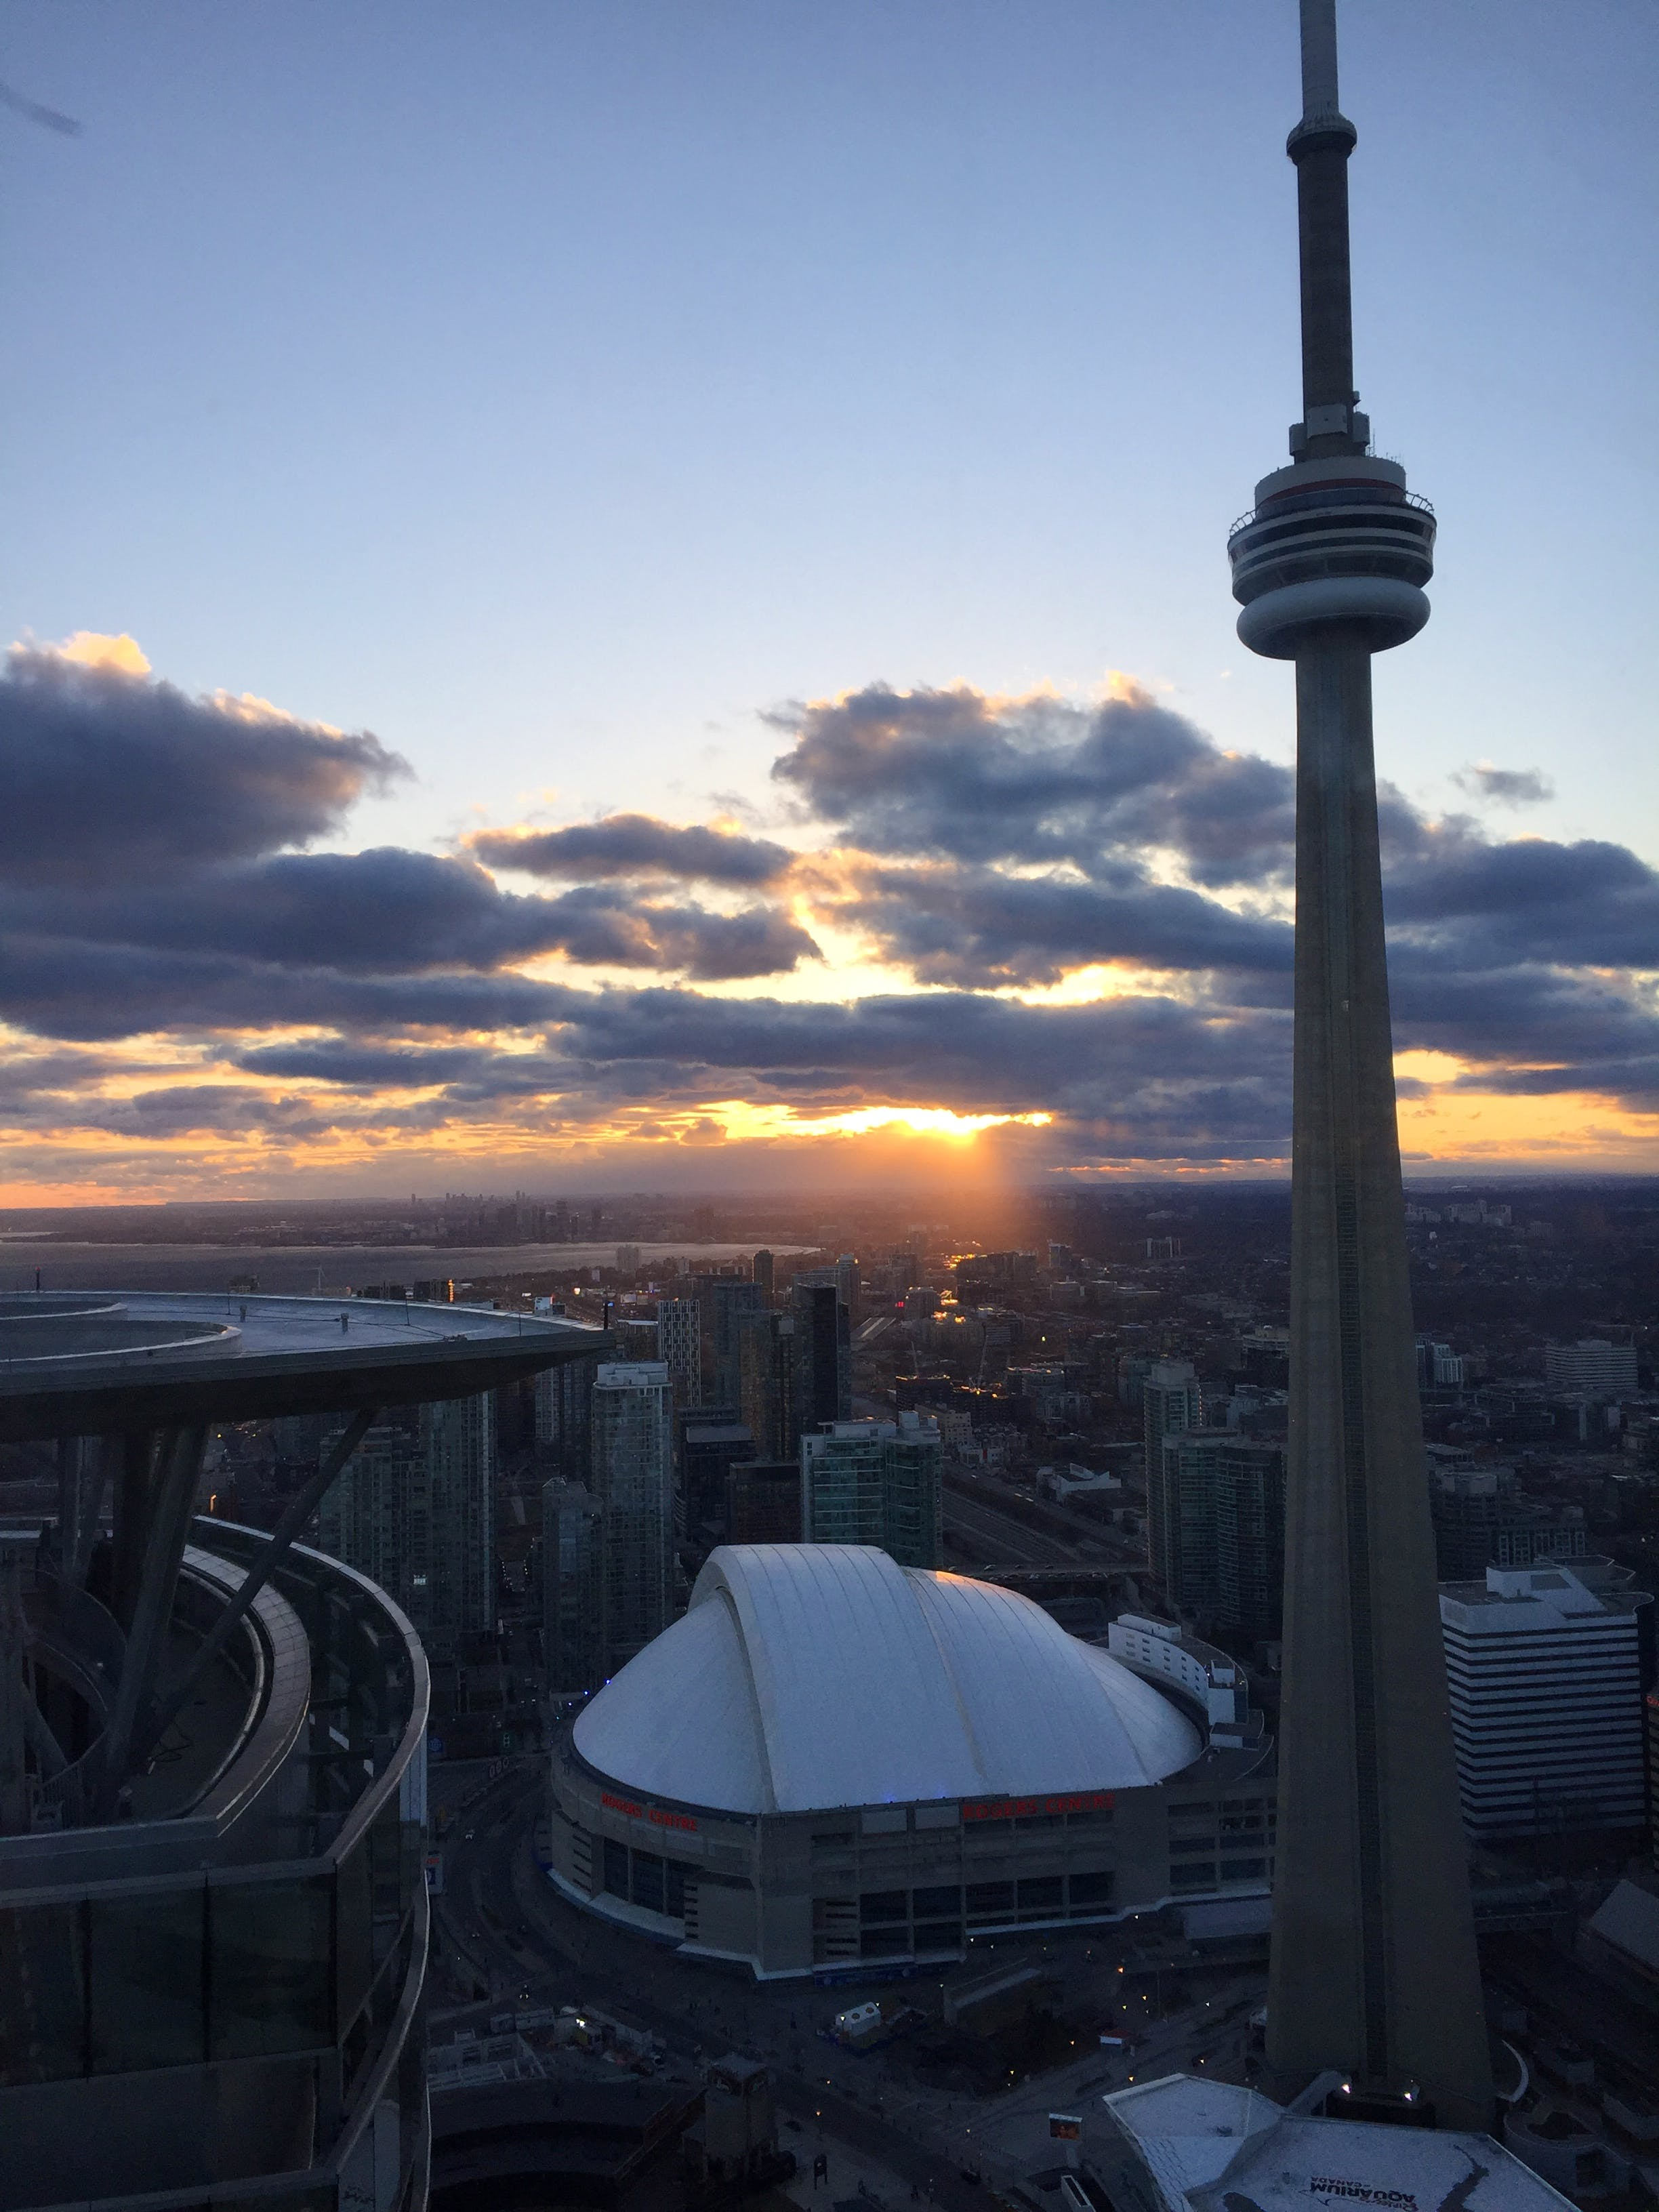 Rogers Centre and CN Tower Toronto Sunset at iHost Suites